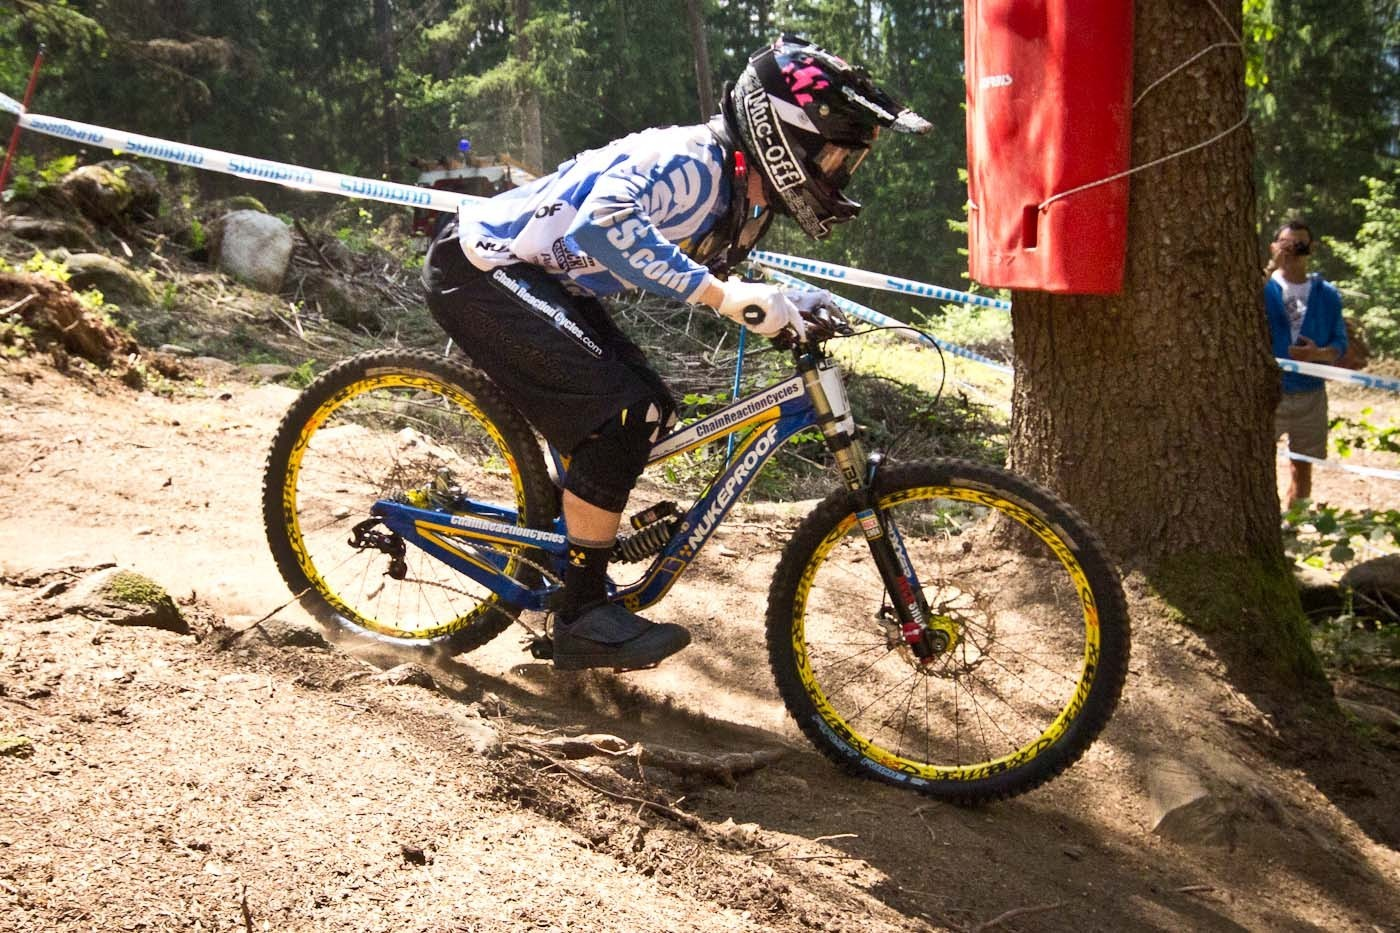 Nukeproof Pulse G-Out at Val di Sole - G-OUT PROJECT: 2013 Val di Sole World Cup - Mountain Biking Pictures - Vital MTB